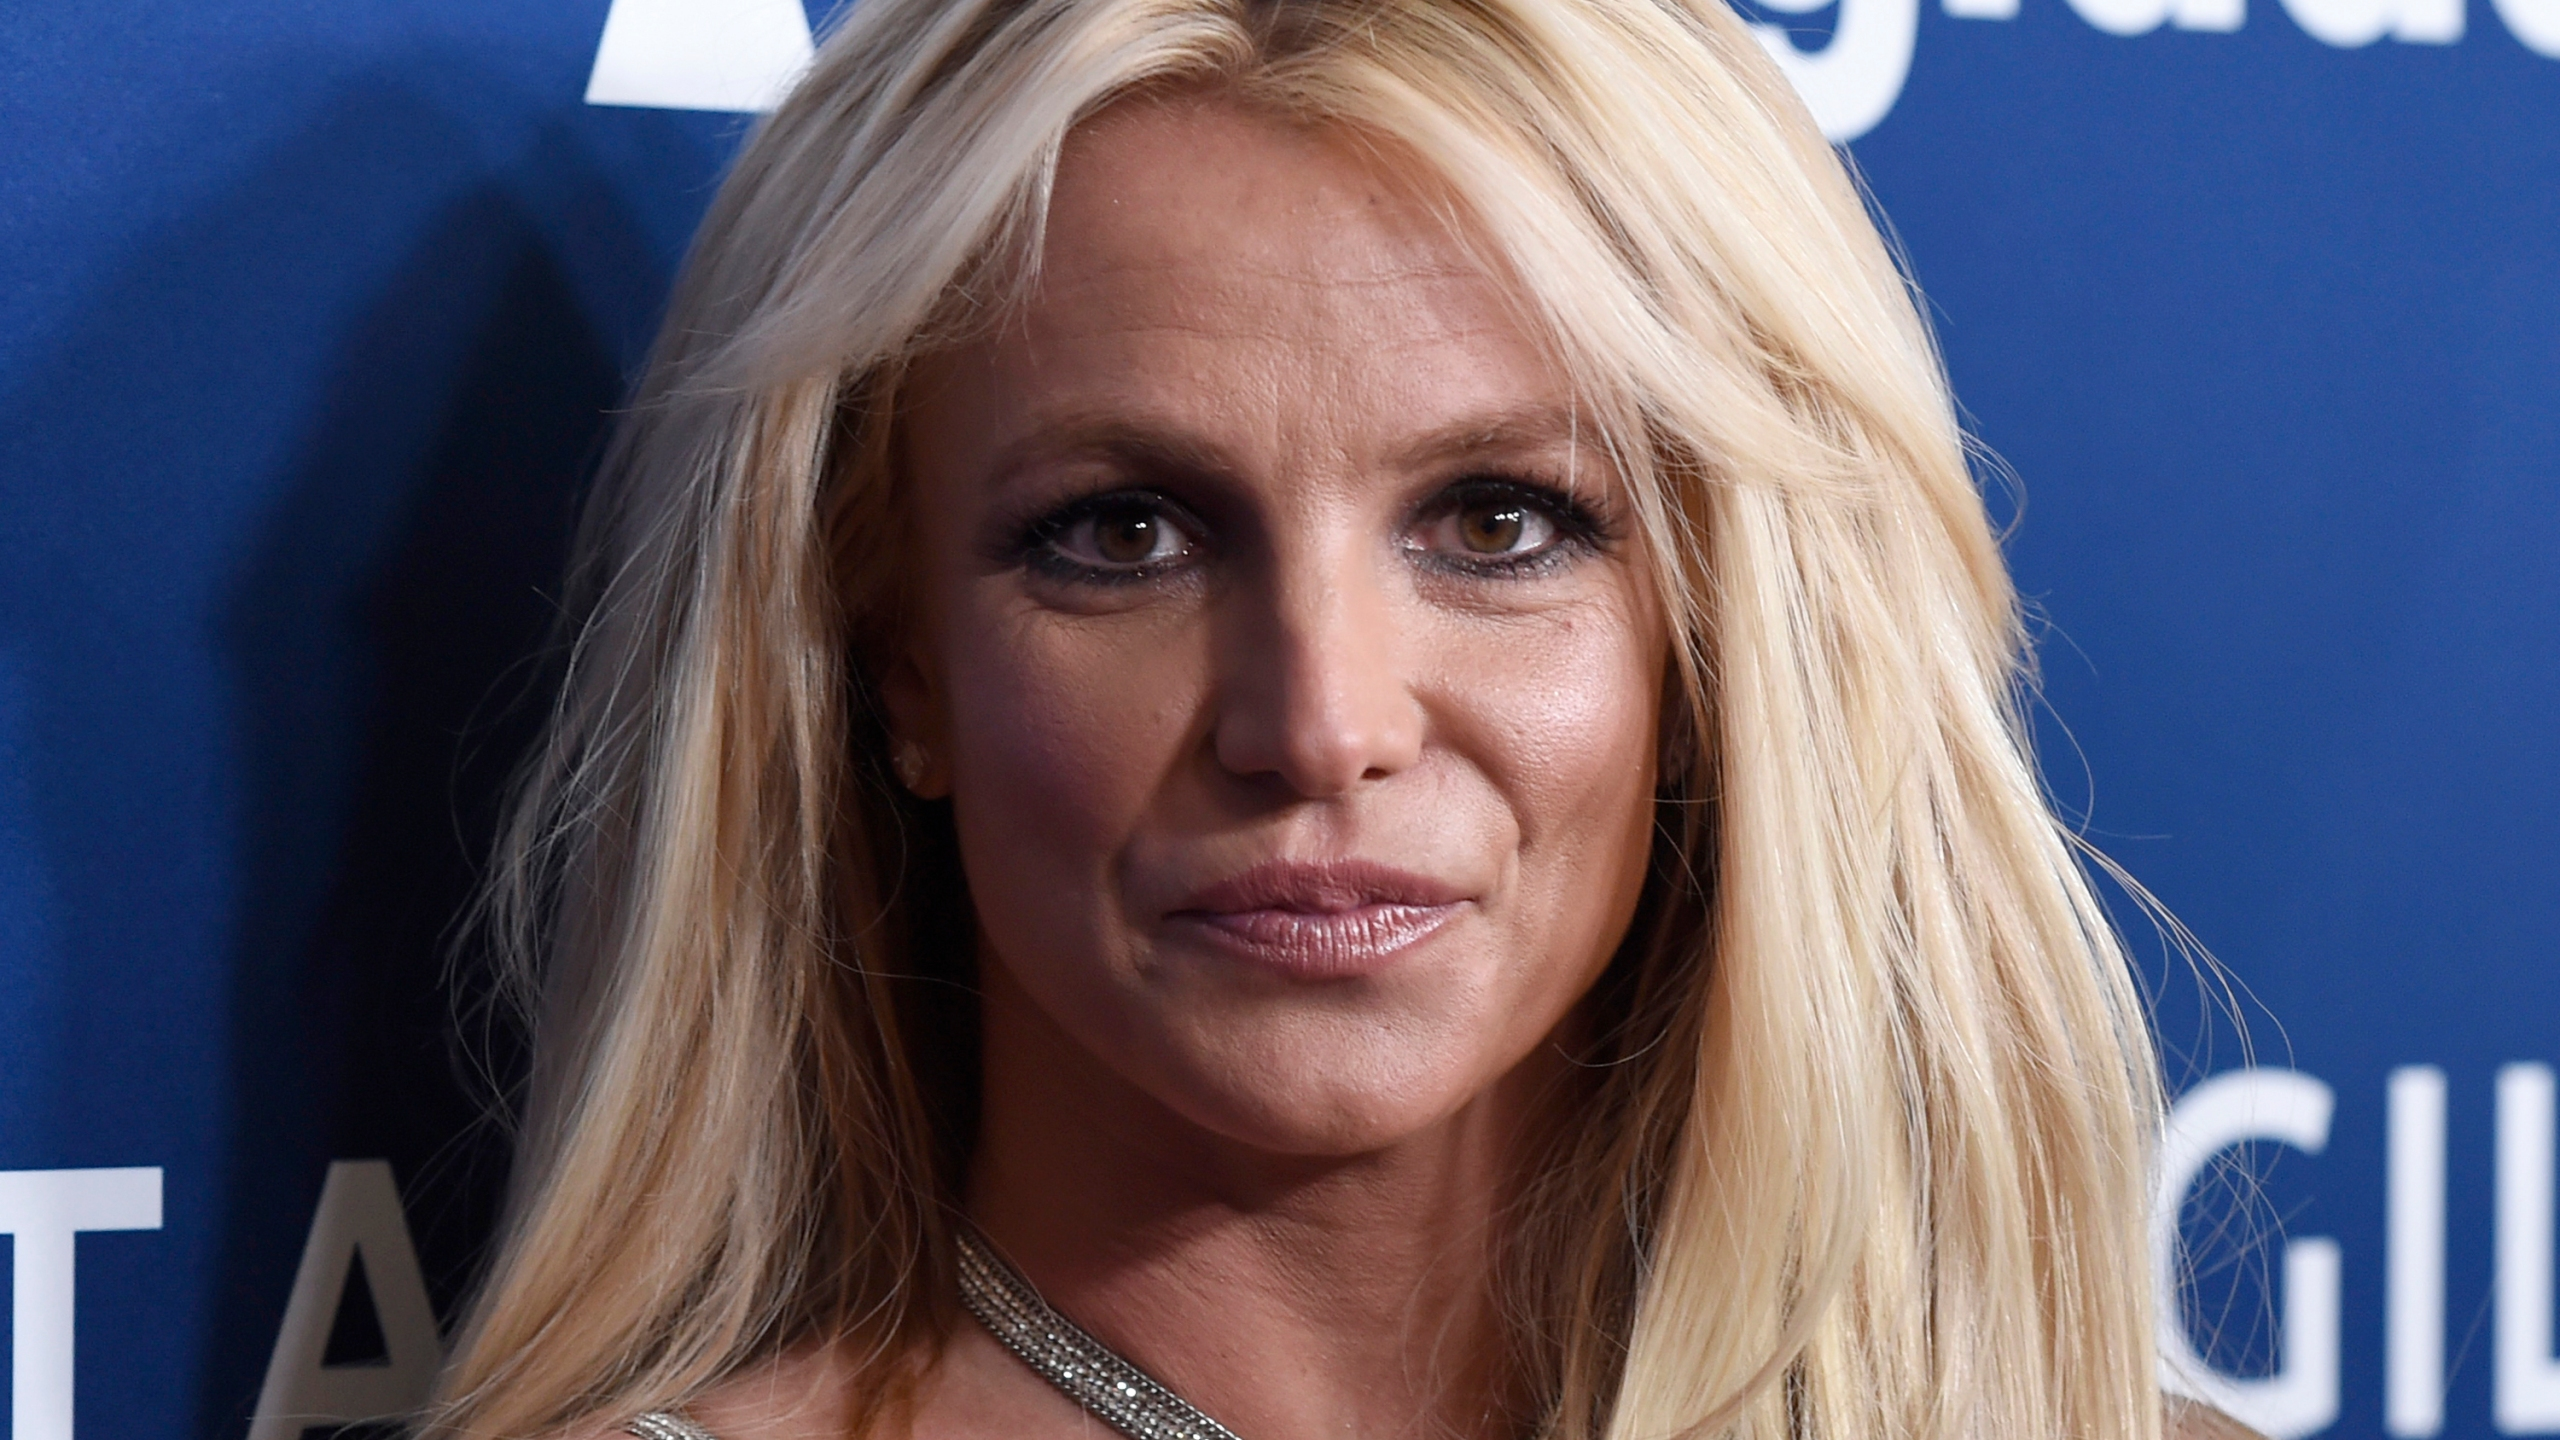 FILE - Britney Spears arrives at the 29th annual GLAAD Media Awards on April 12, 2018, in Beverly Hills, Calif. Authorities say they are investigating Spears for misdemeanor battery after a staff member at her home said the singer struck her. The Ventura County Sheriff's Office said Thursday, Aug. 19, 2021, that deputies responded to Spears home after the staff member reported the Monday night dispute. (Photo by Chris Pizzello/Invision/AP, File)